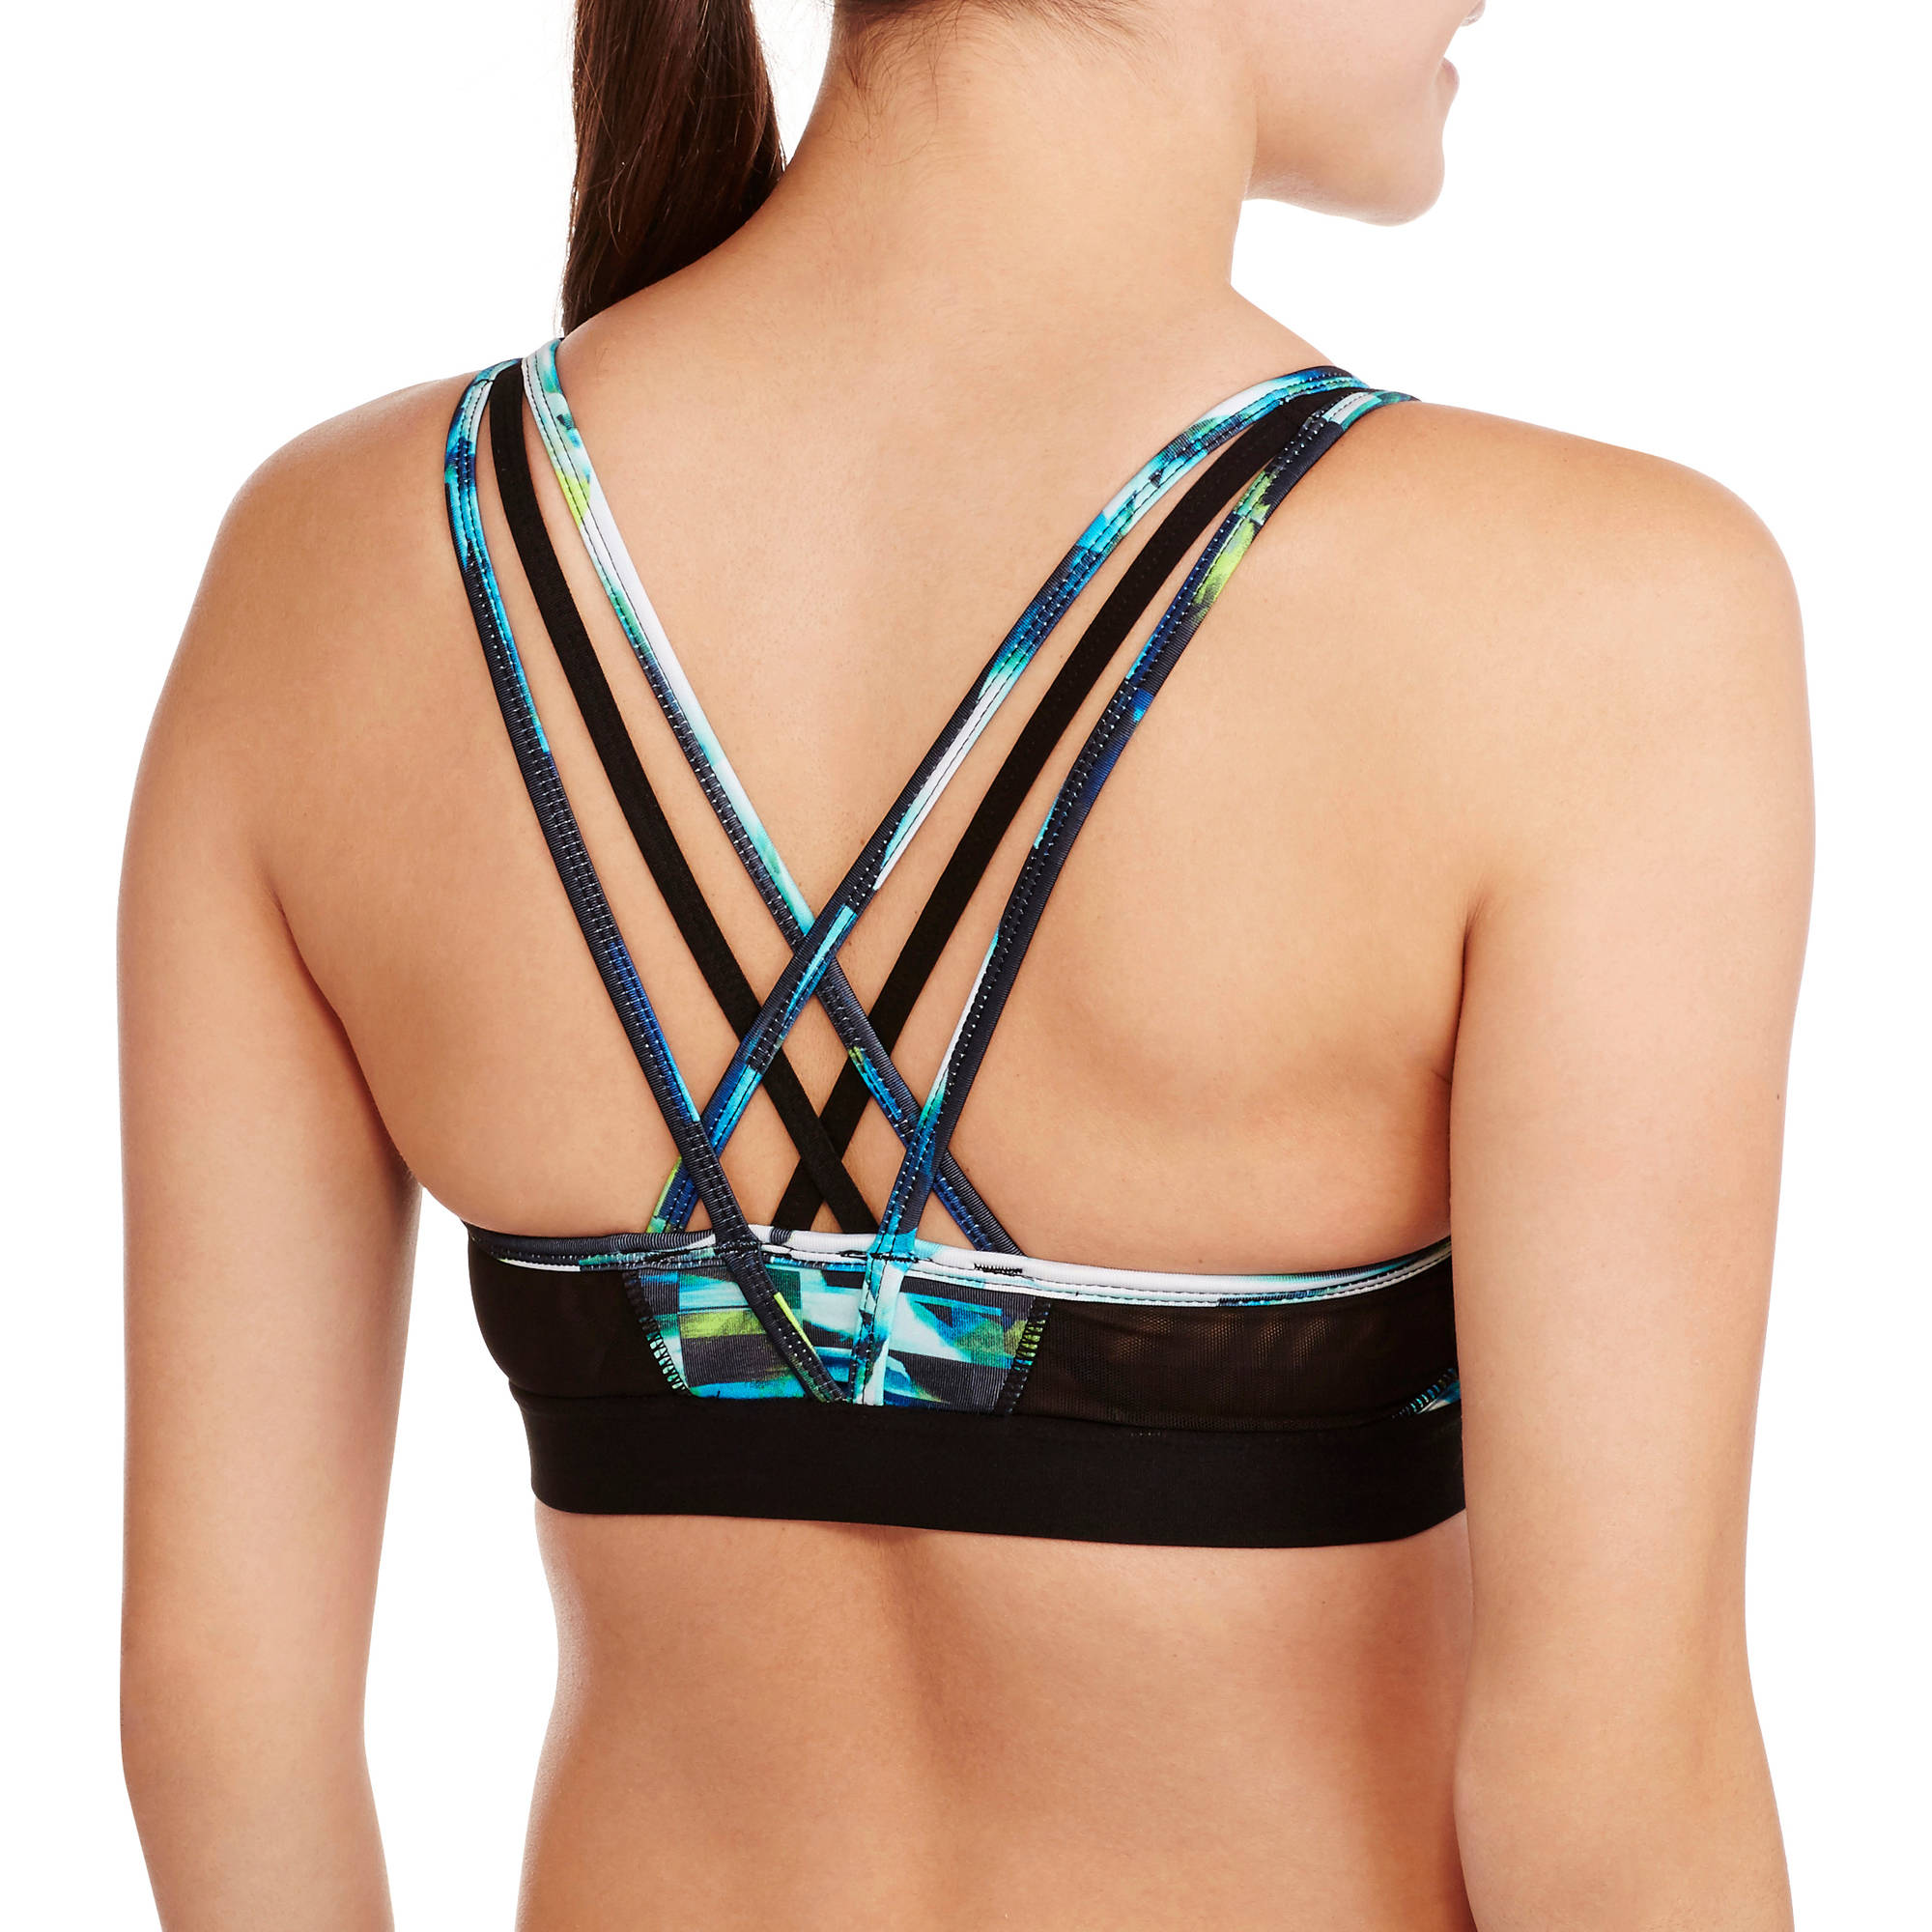 ad4f23eccf Avia - Women s Active Printed Sports Bra with Strappy Back - Walmart.com